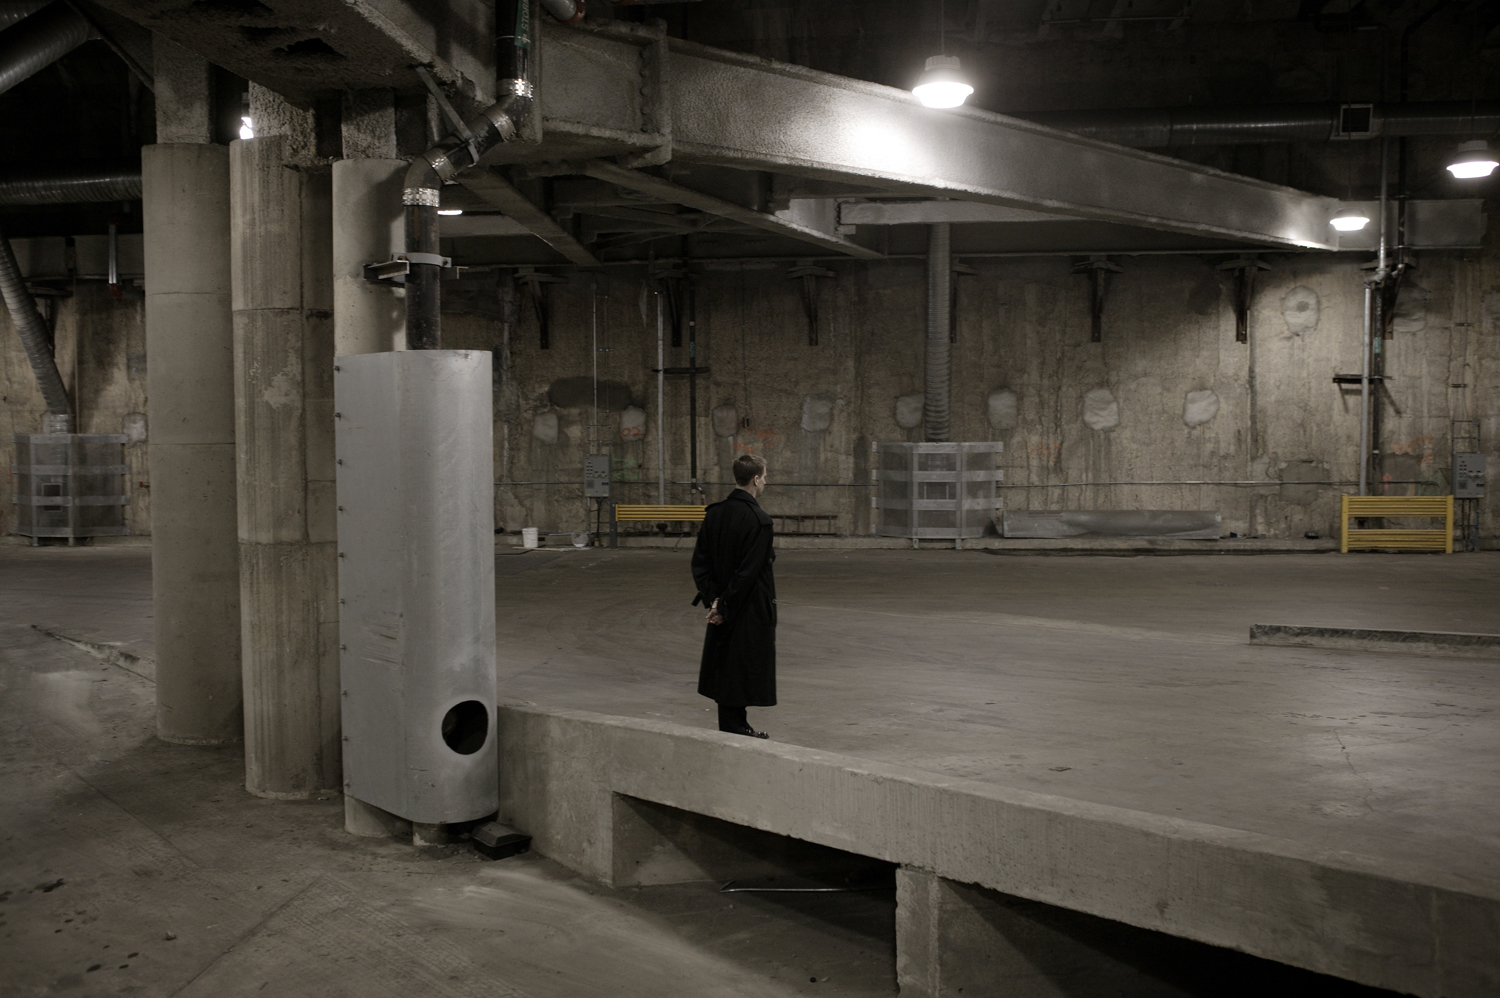 2004. A Secret Service agent stands guard at a garage in Washington, D.C.